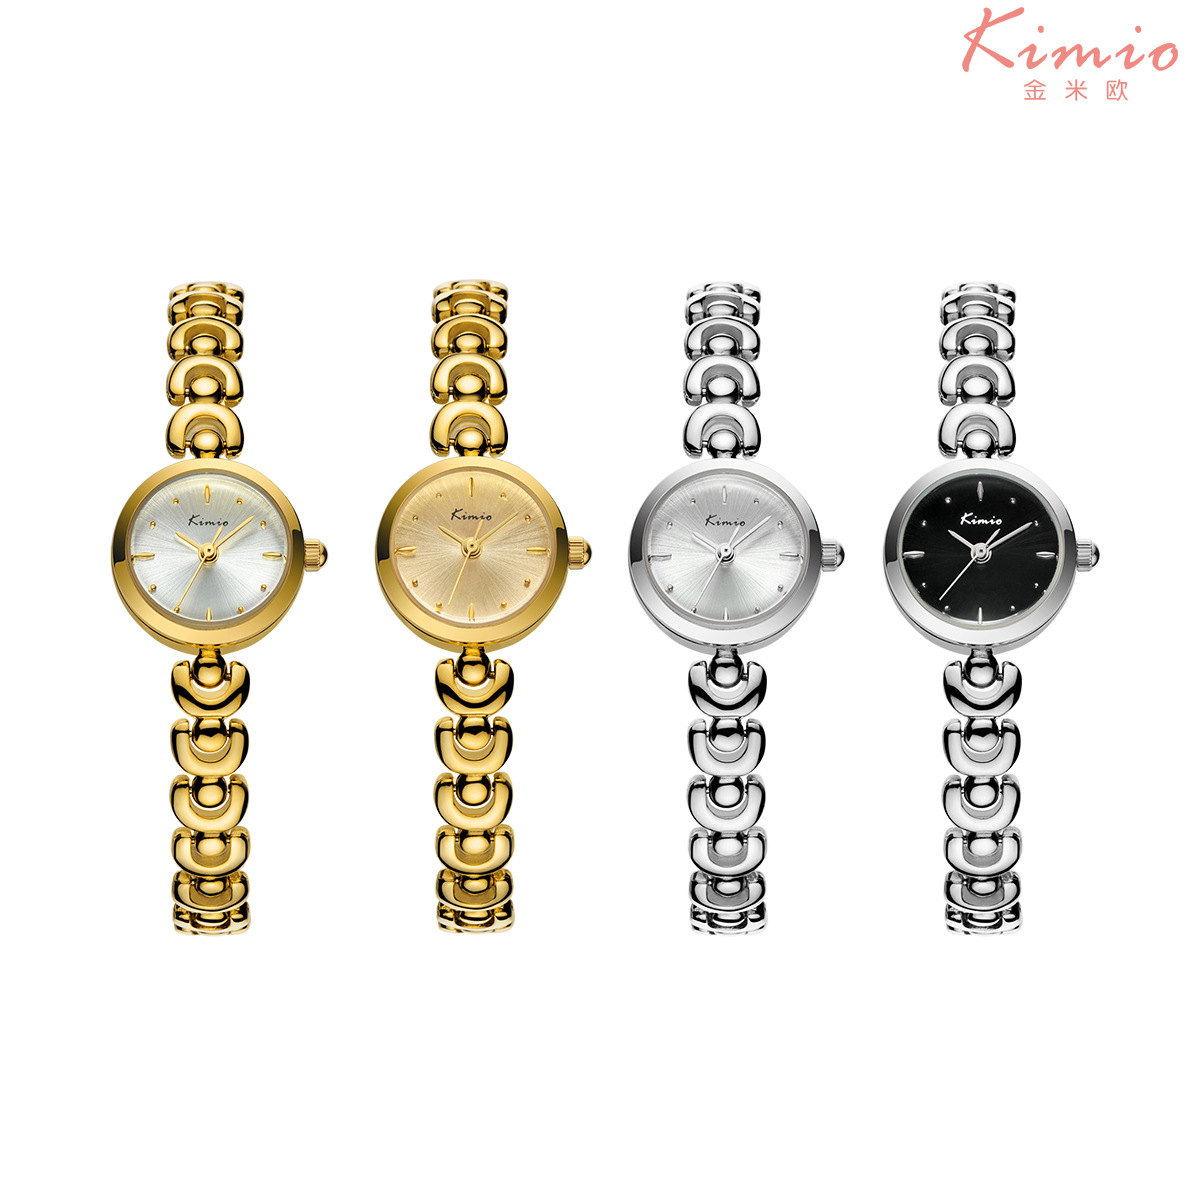 Alloy high quality fashion wristwatches quartz